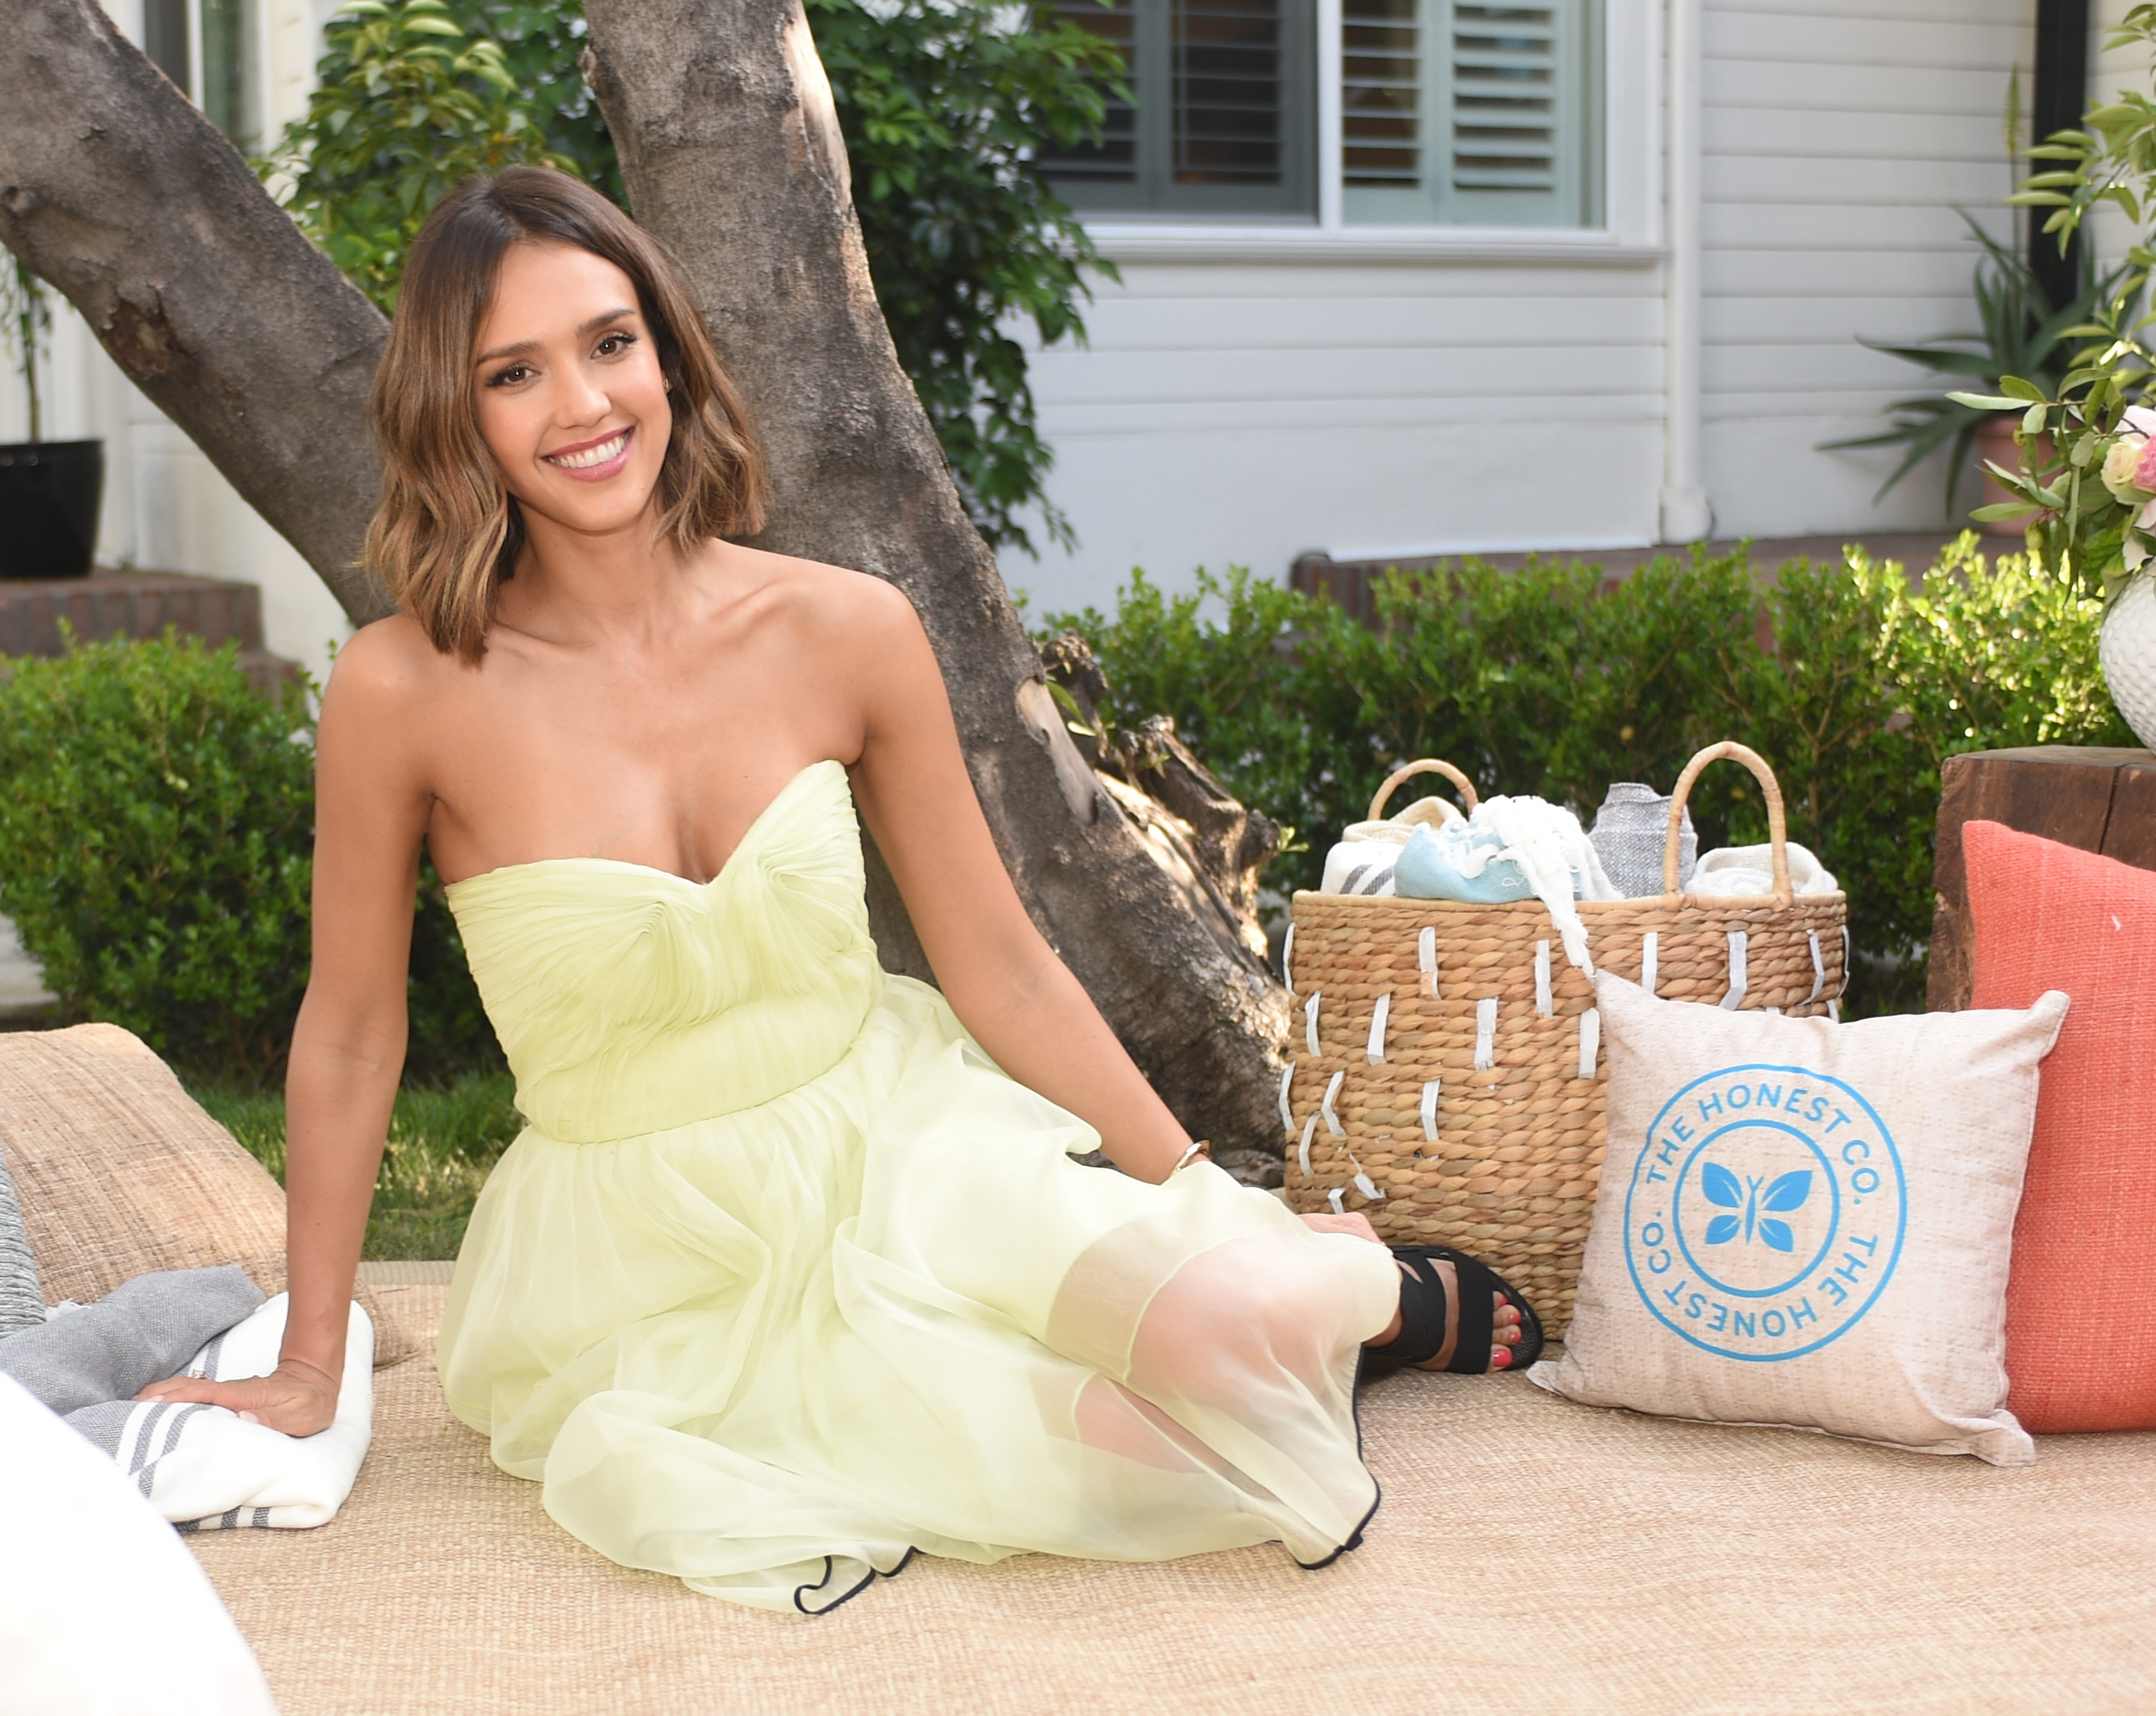 Jessica Alba attends The Honest Company at Target one-year anniversary event on April 29, 2015 in Los Angeles, California.